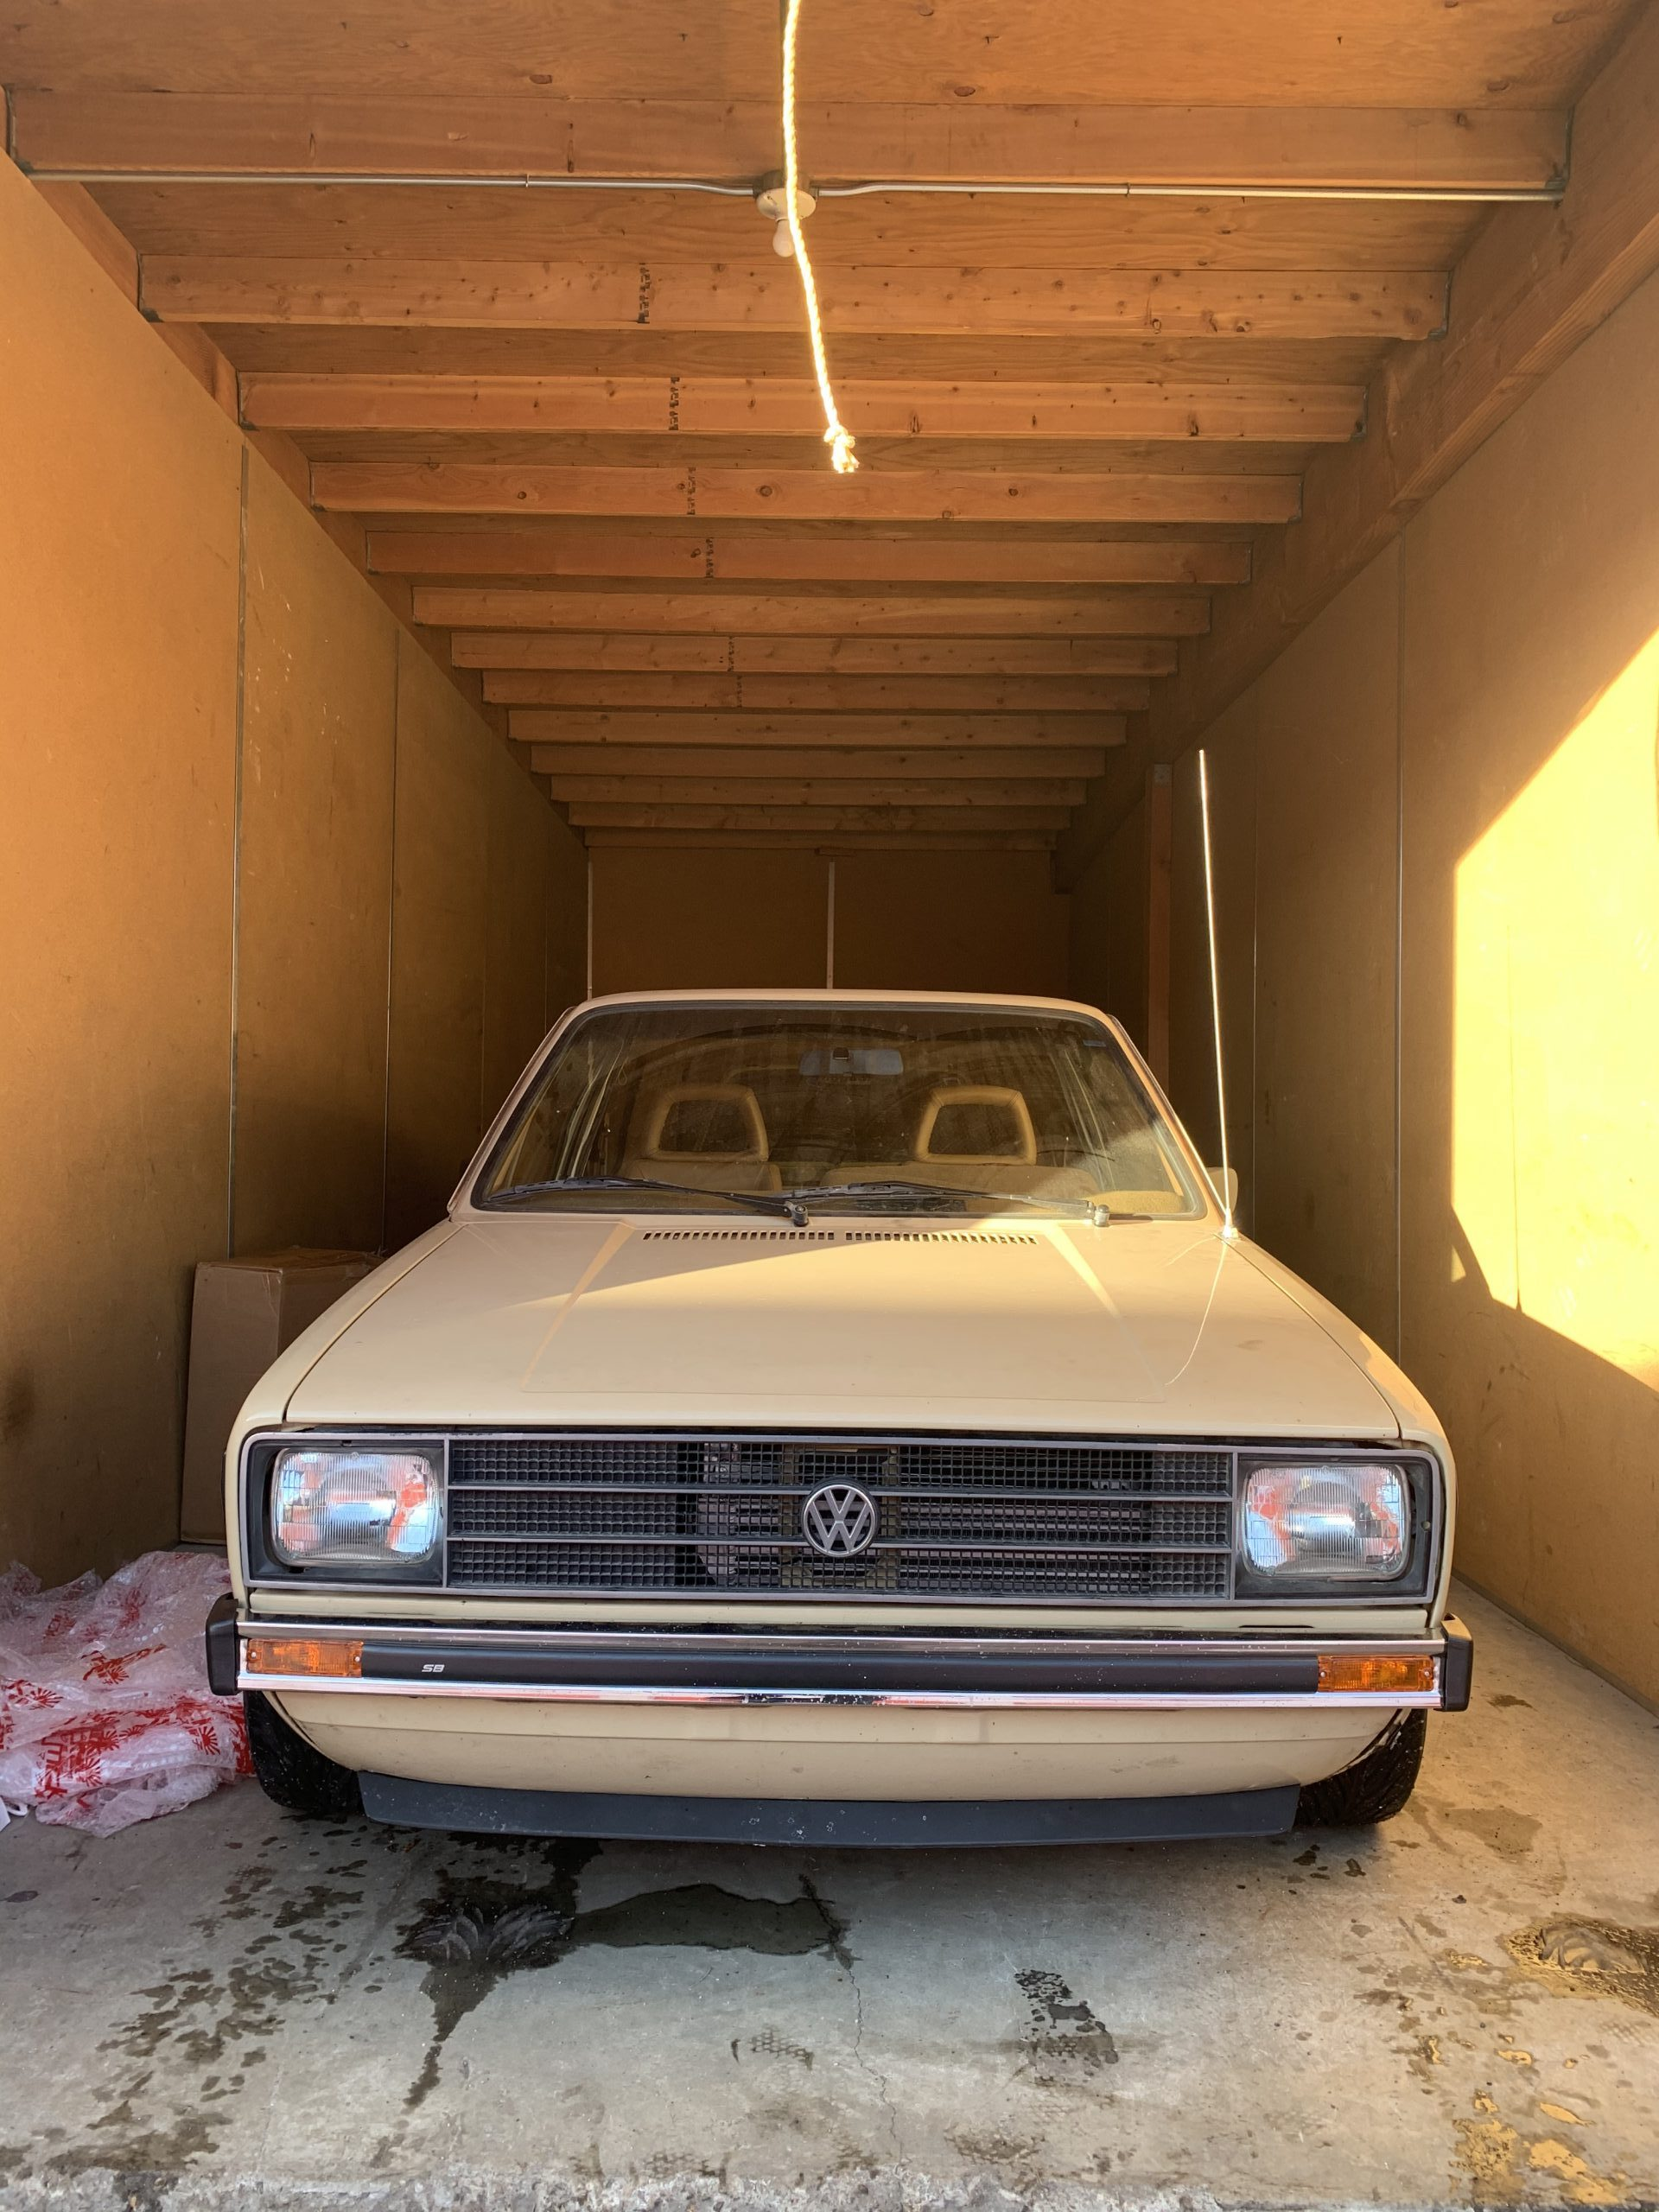 1980 VW Rabbit TDI swap front Dec 13, 3 25 45 PM